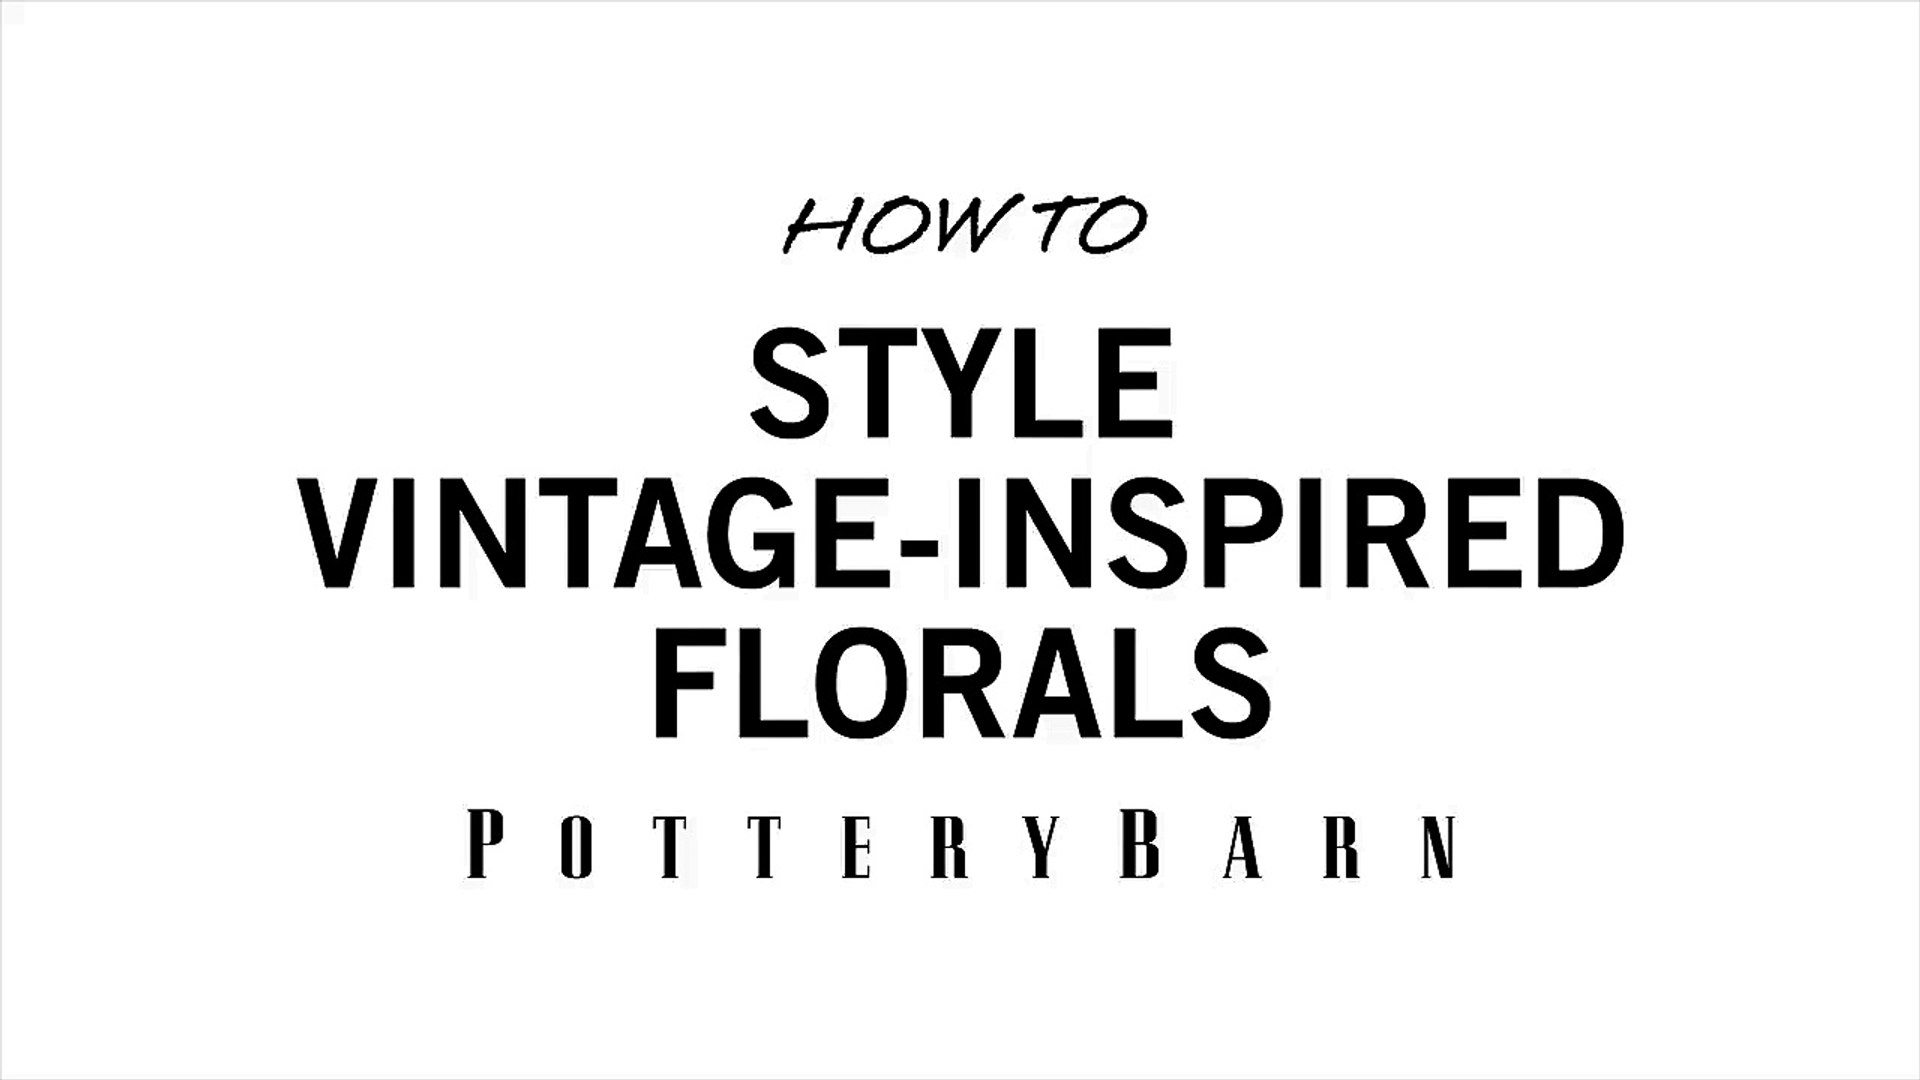 How to Style Vintage-Inspired Florals-G14Ys